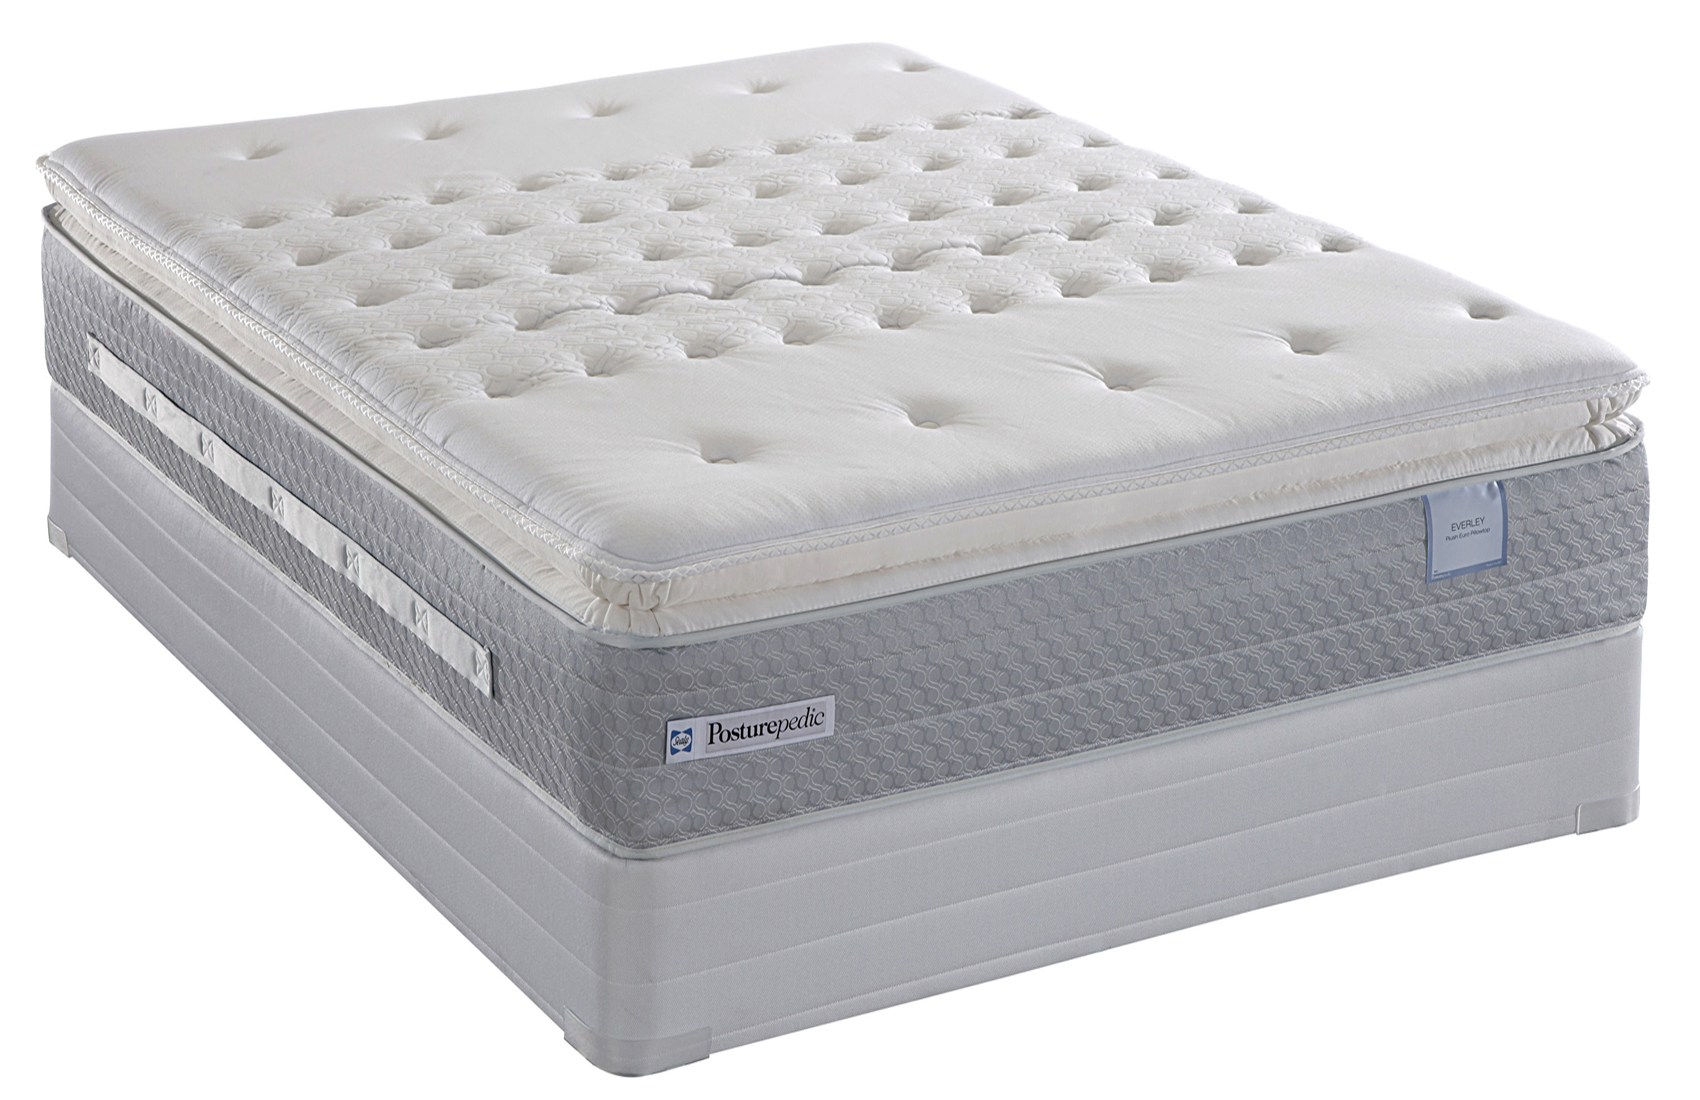 Sealy posturepedic titanium ss plush super pillow top for Which mattress company is the best